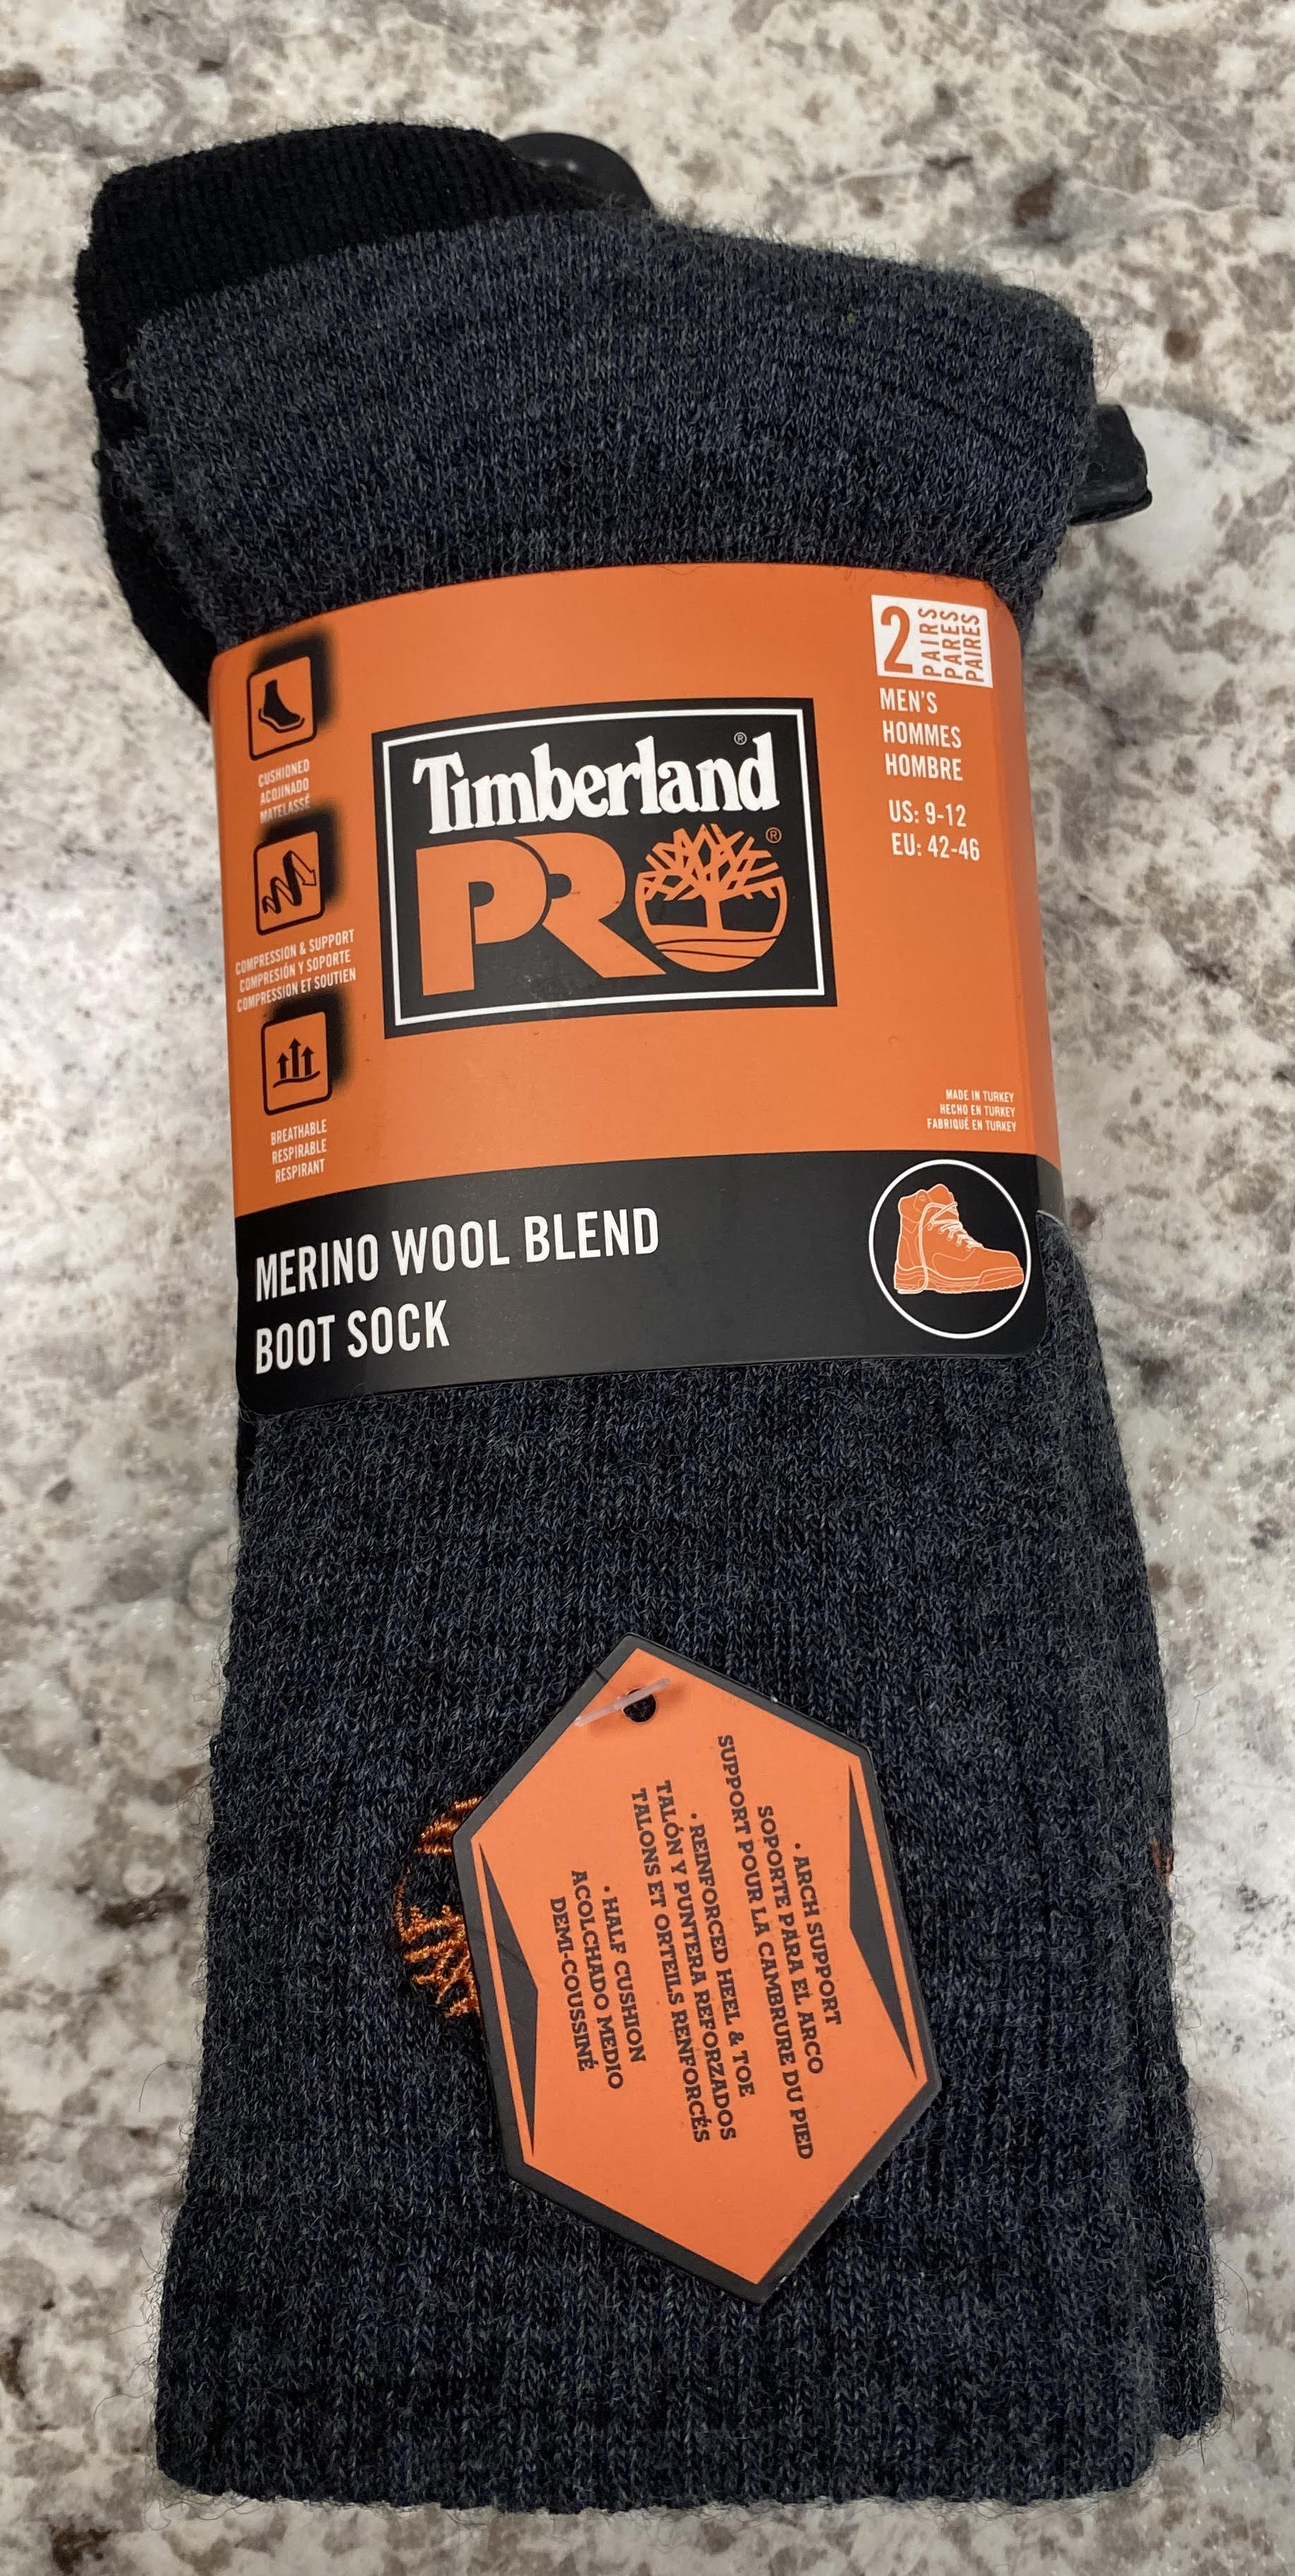 Merino Wool Blend Boot Sock #43TB219996TD-BK